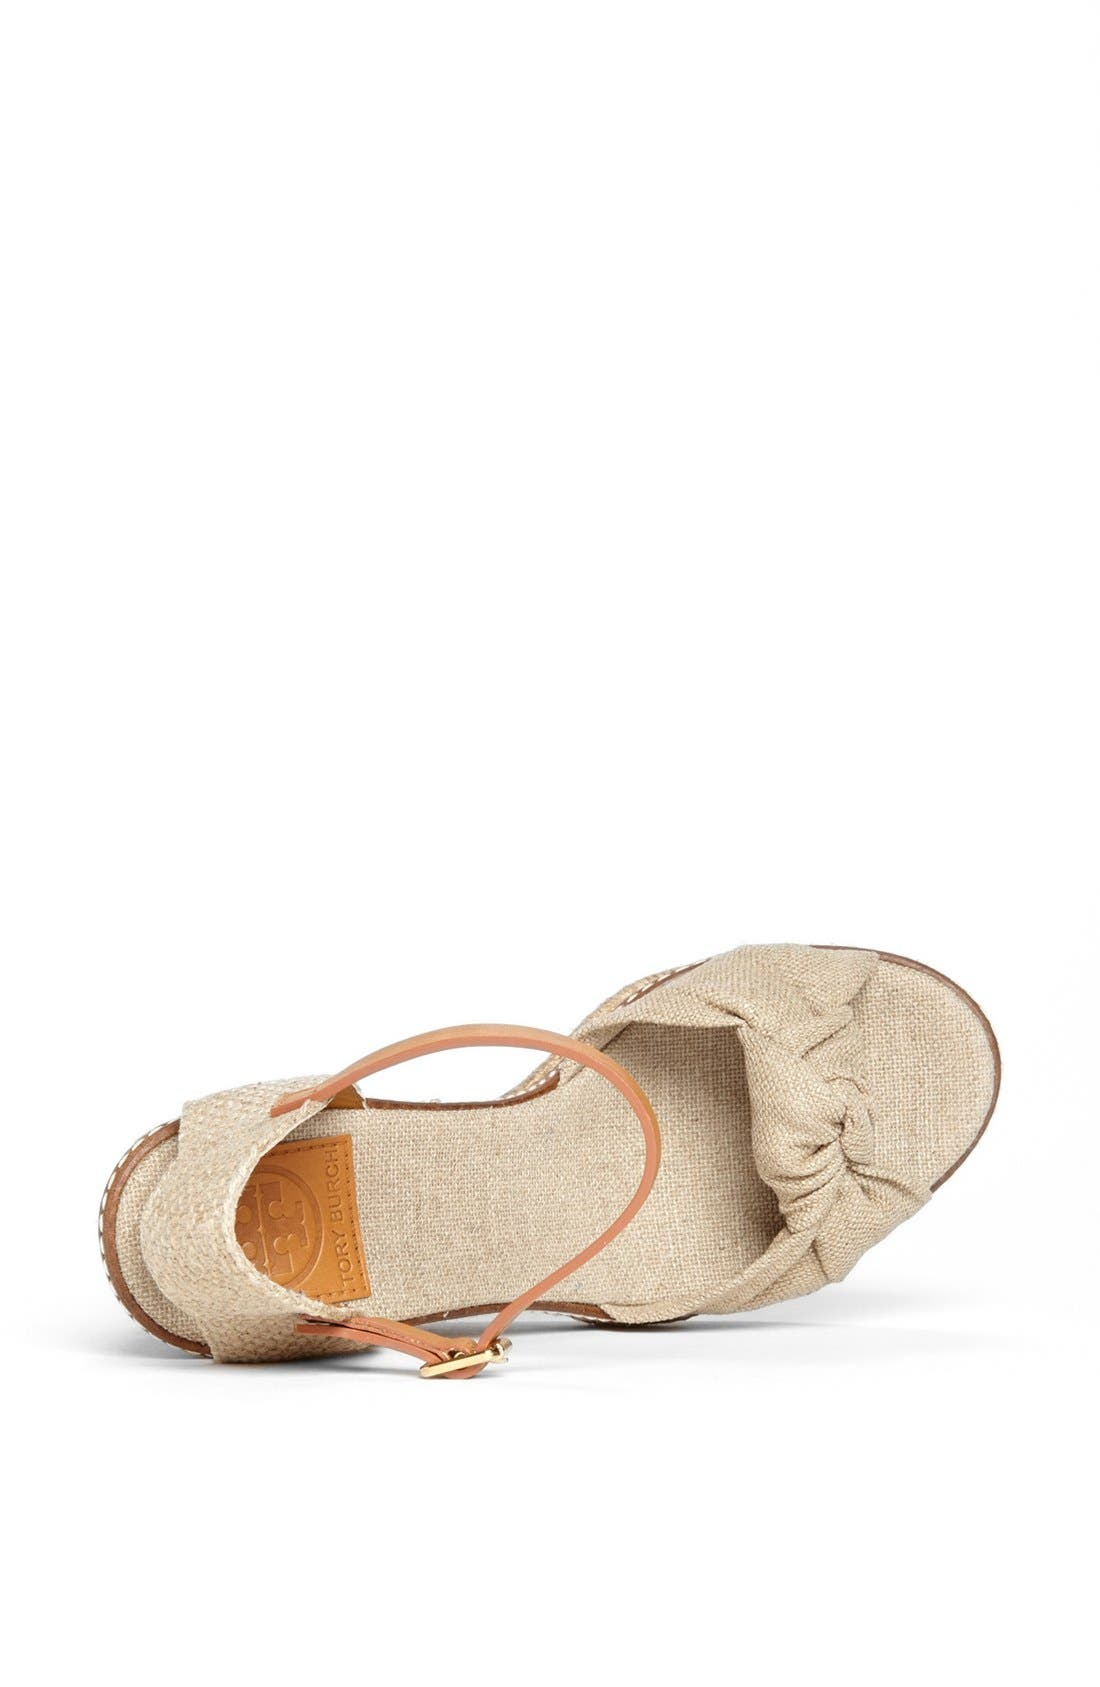 Alternate Image 3  - Tory Burch 'Macy' Leather Wedge Espadrille Sandal